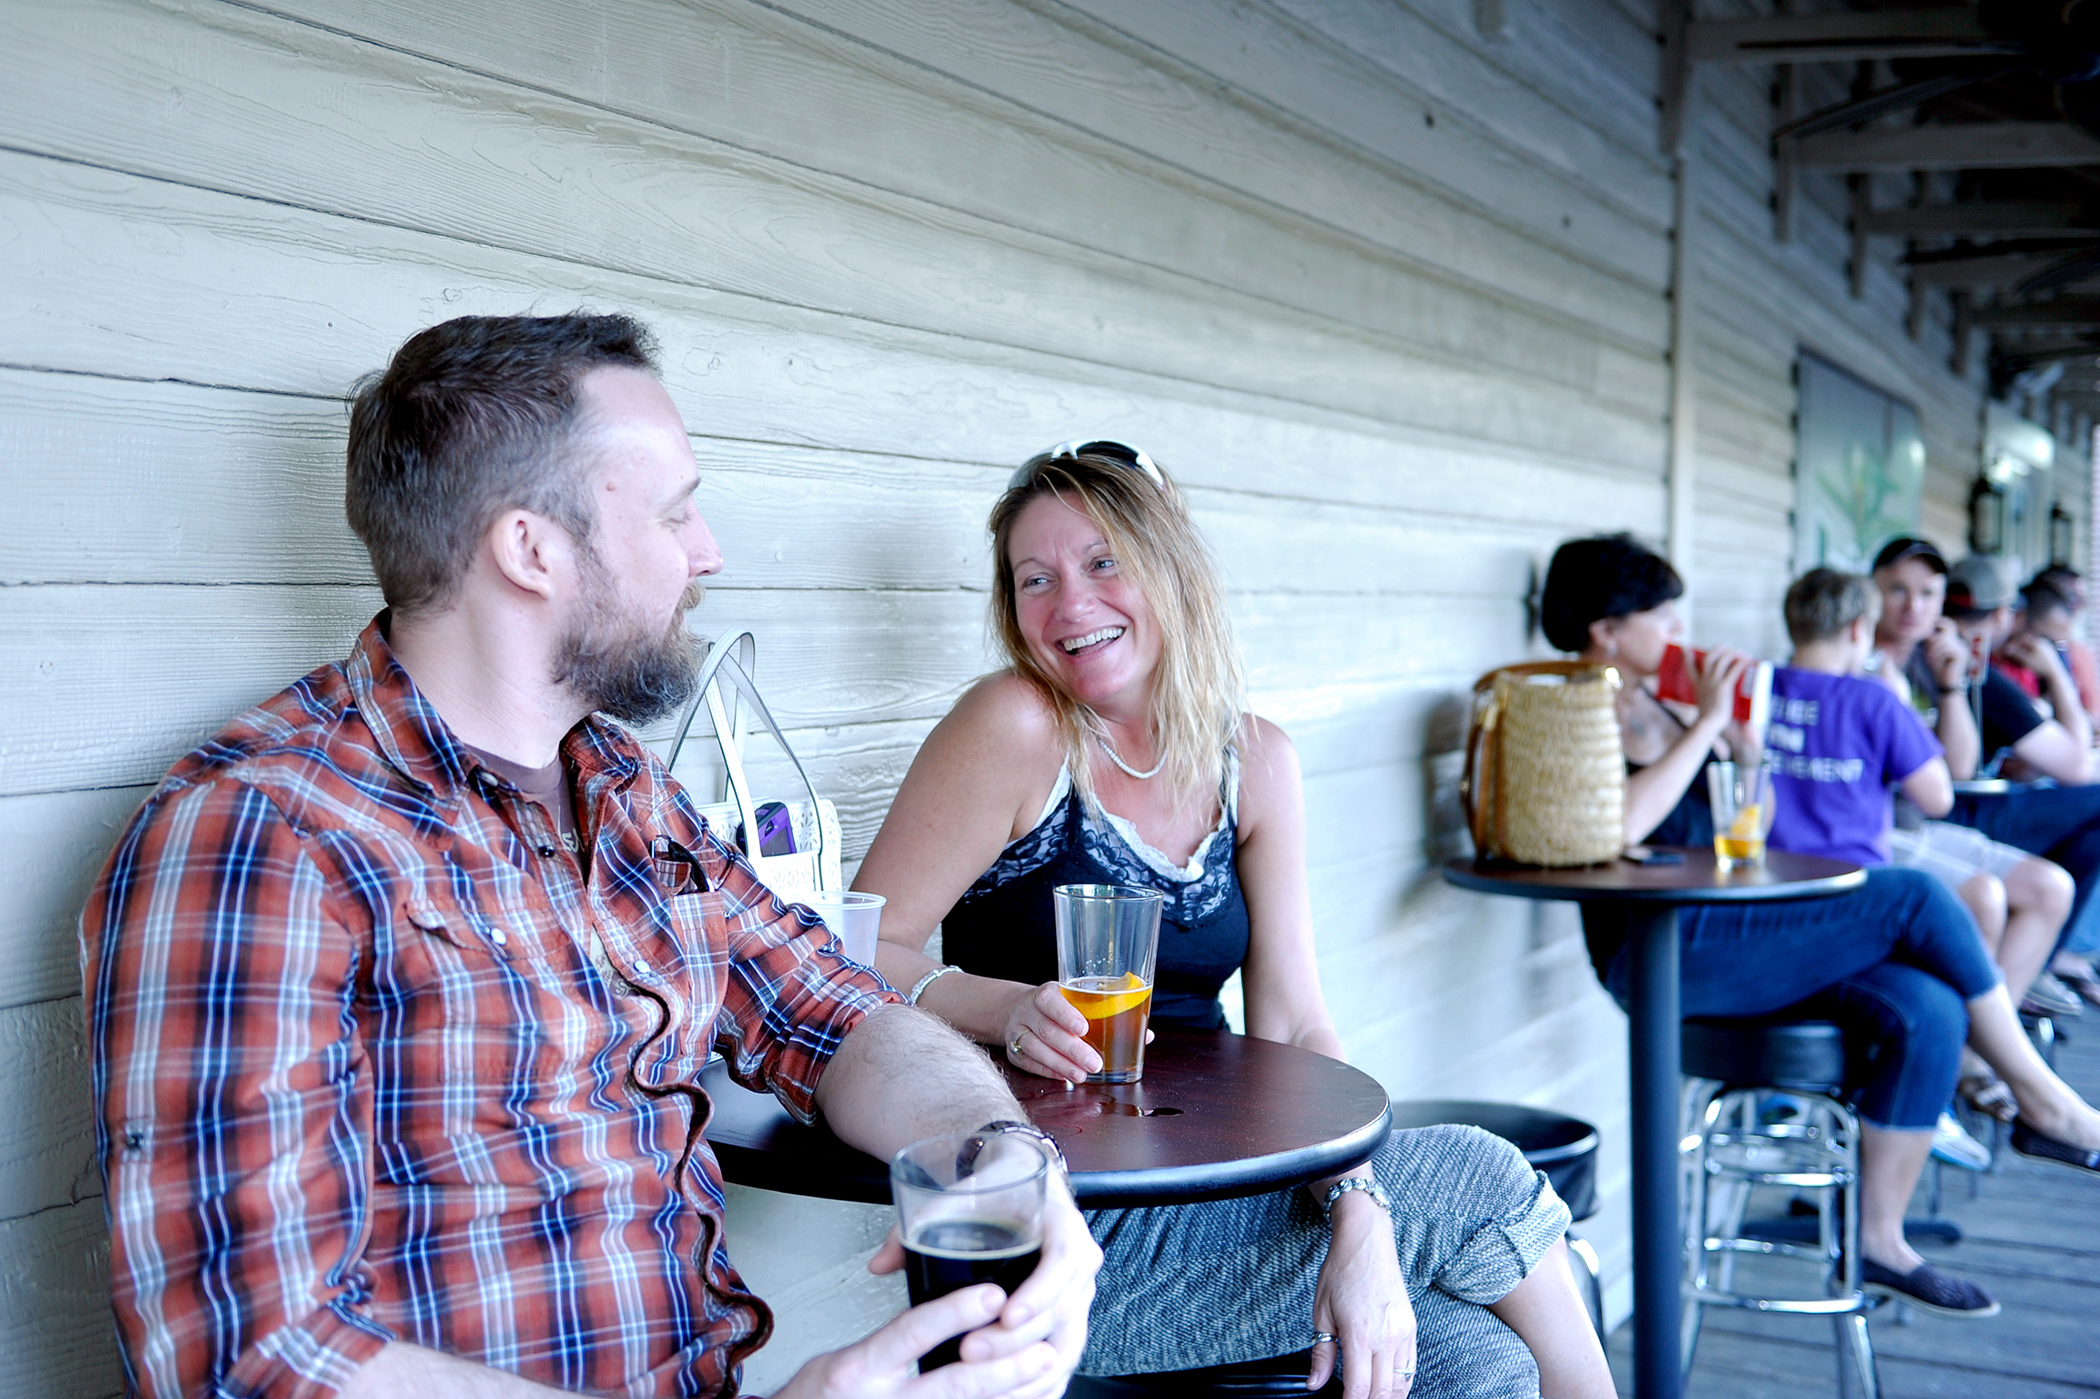 10. Raleigh:  Maybe it's all the bankers in town—the median household income in Raleigh is more than $57,000. If you're looking to Impress your date there, check out the North Carolina Museum of Art or one of the other four museums in the Raleigh area.